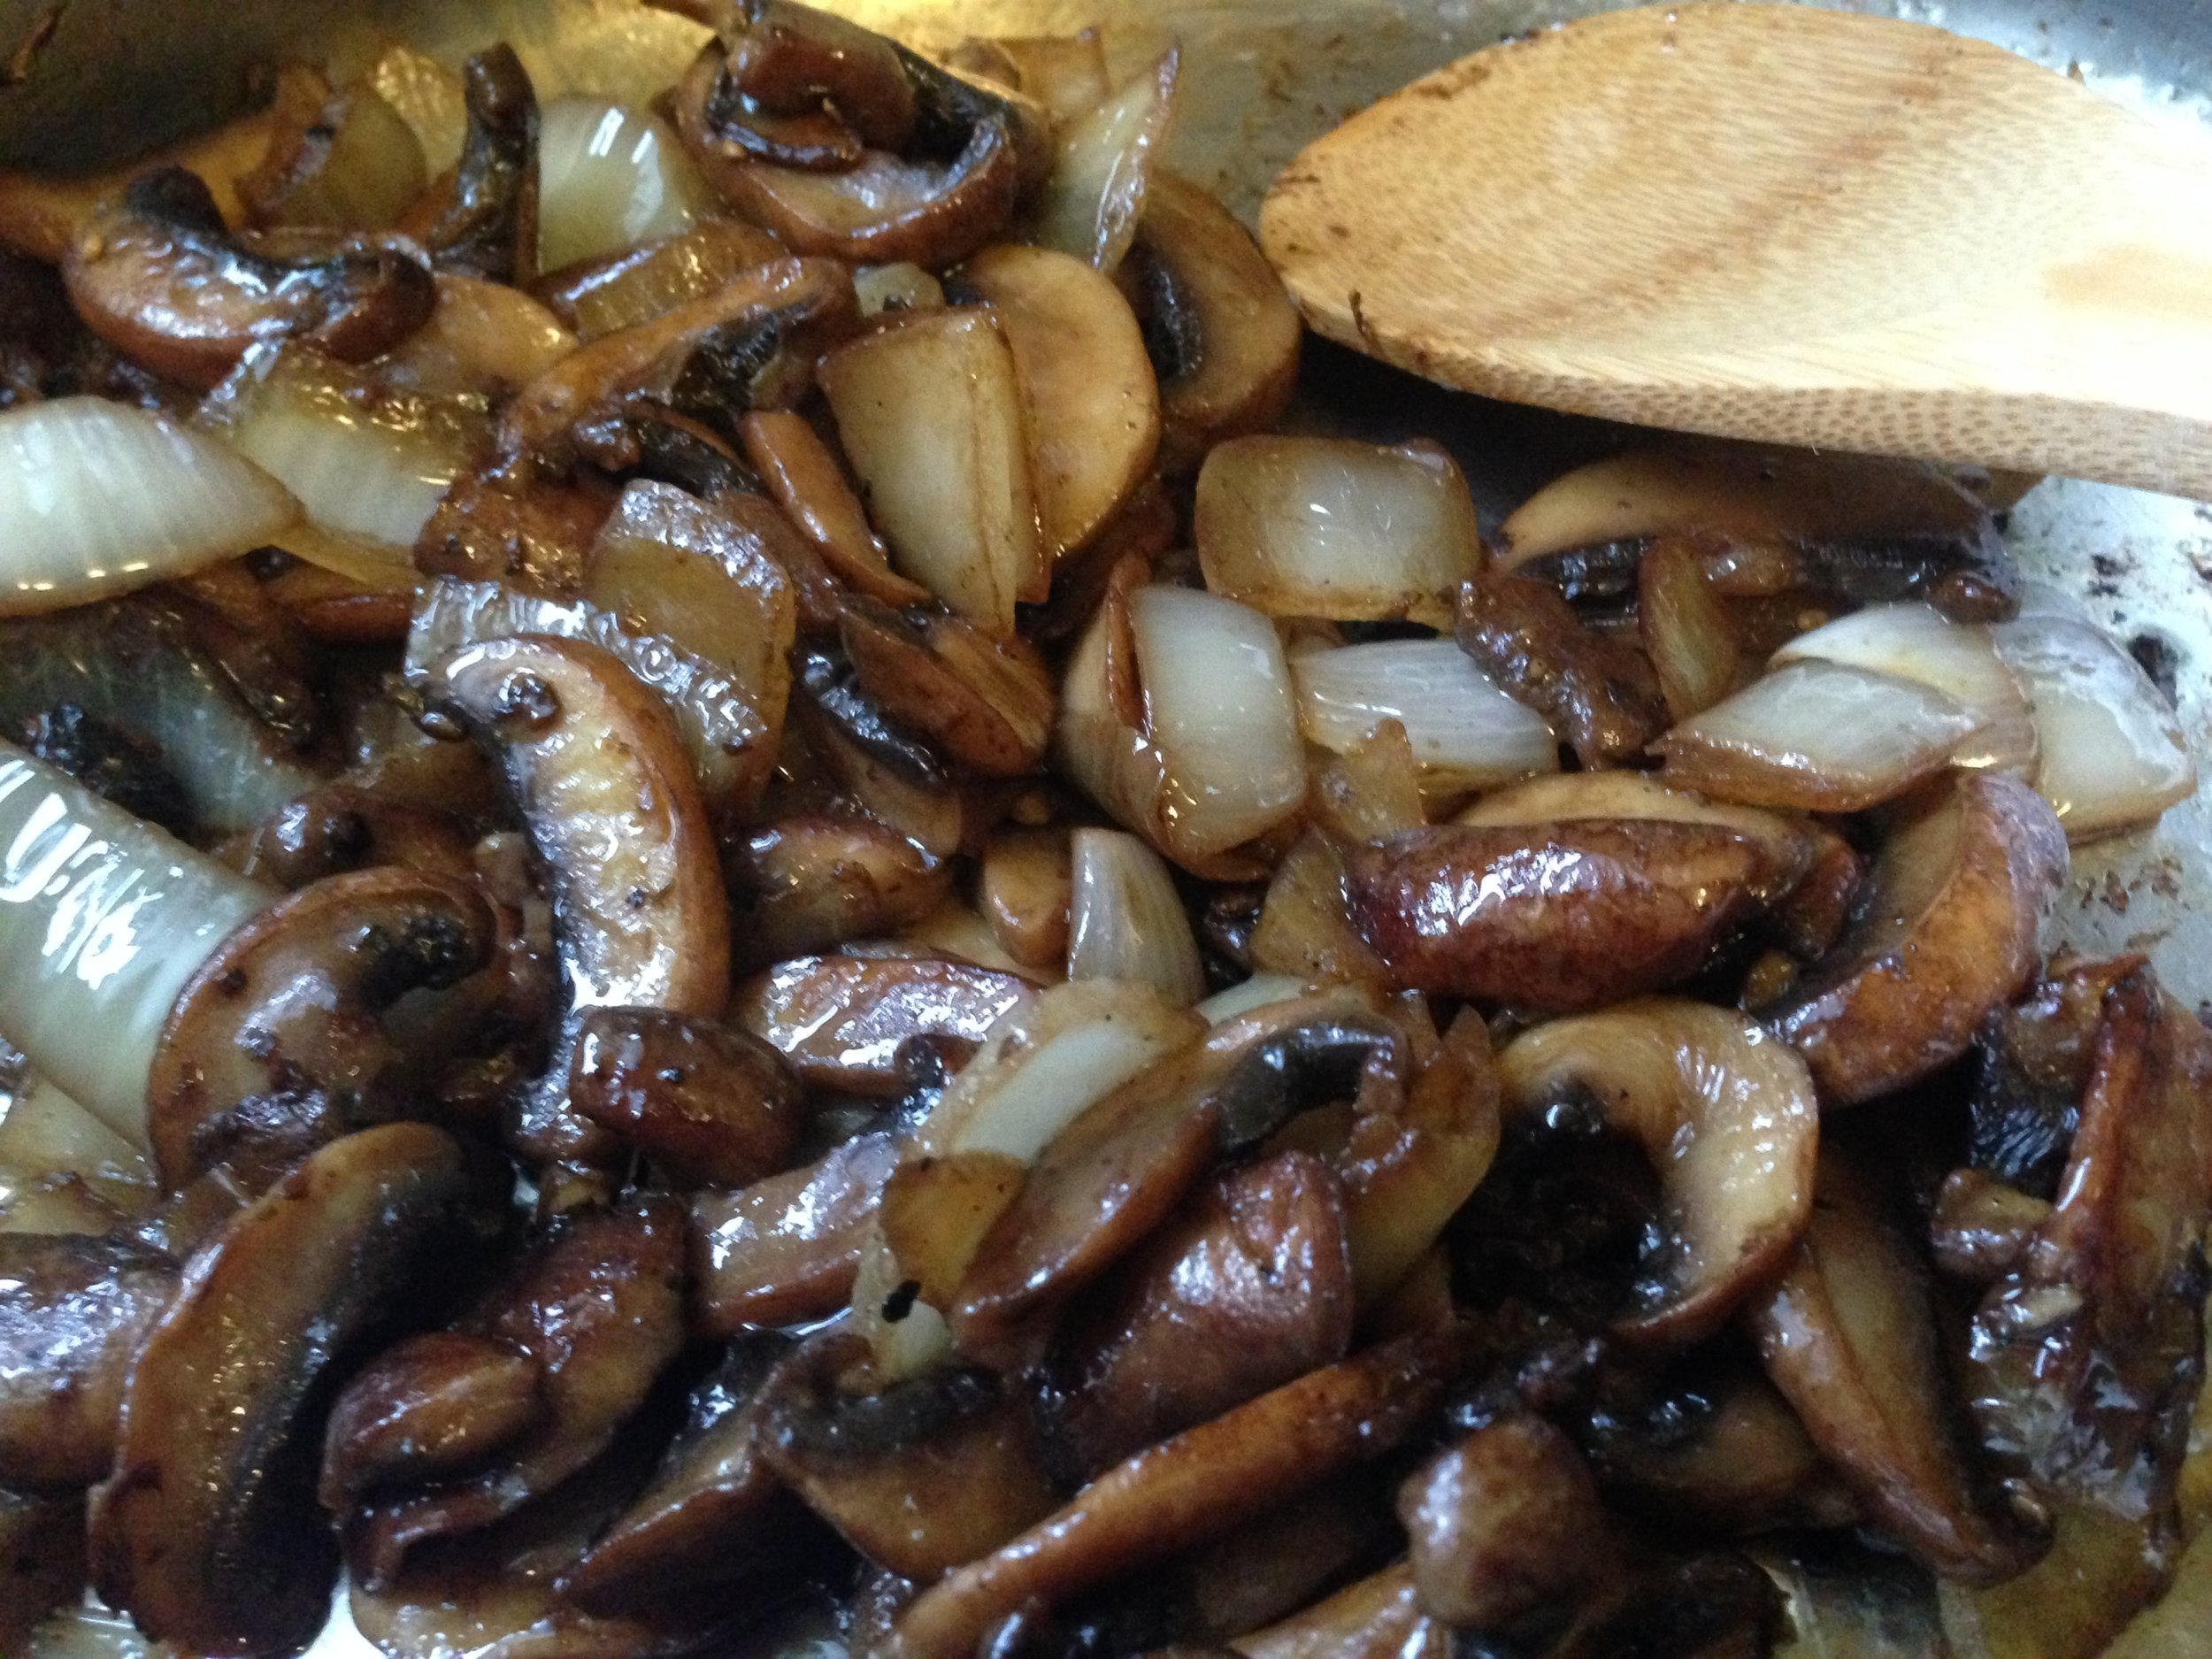 Sauted mushrooms and onions.